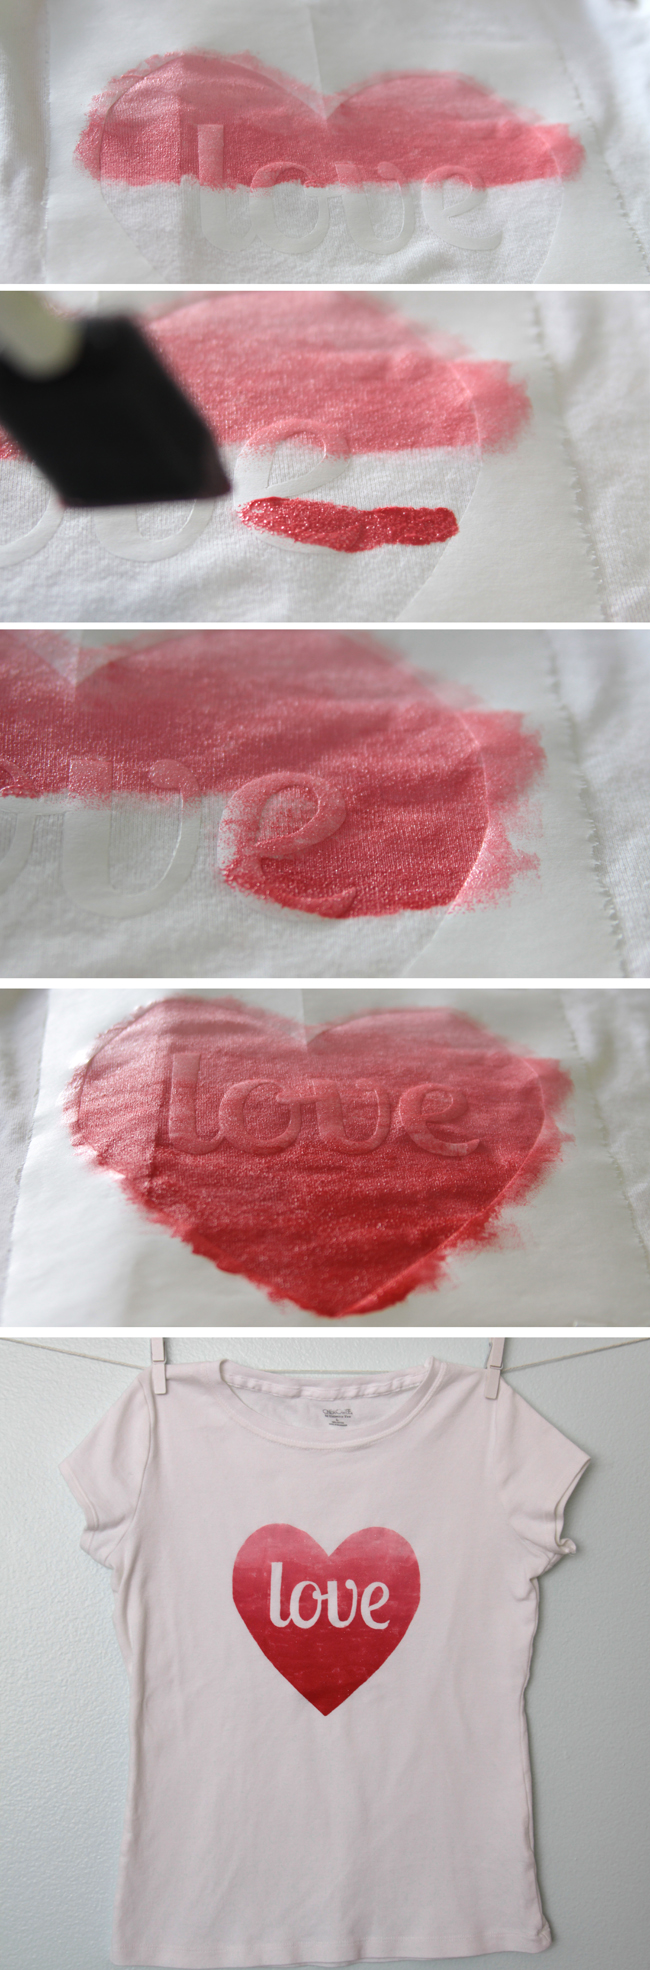 painting red and pink ombre on heart stencil